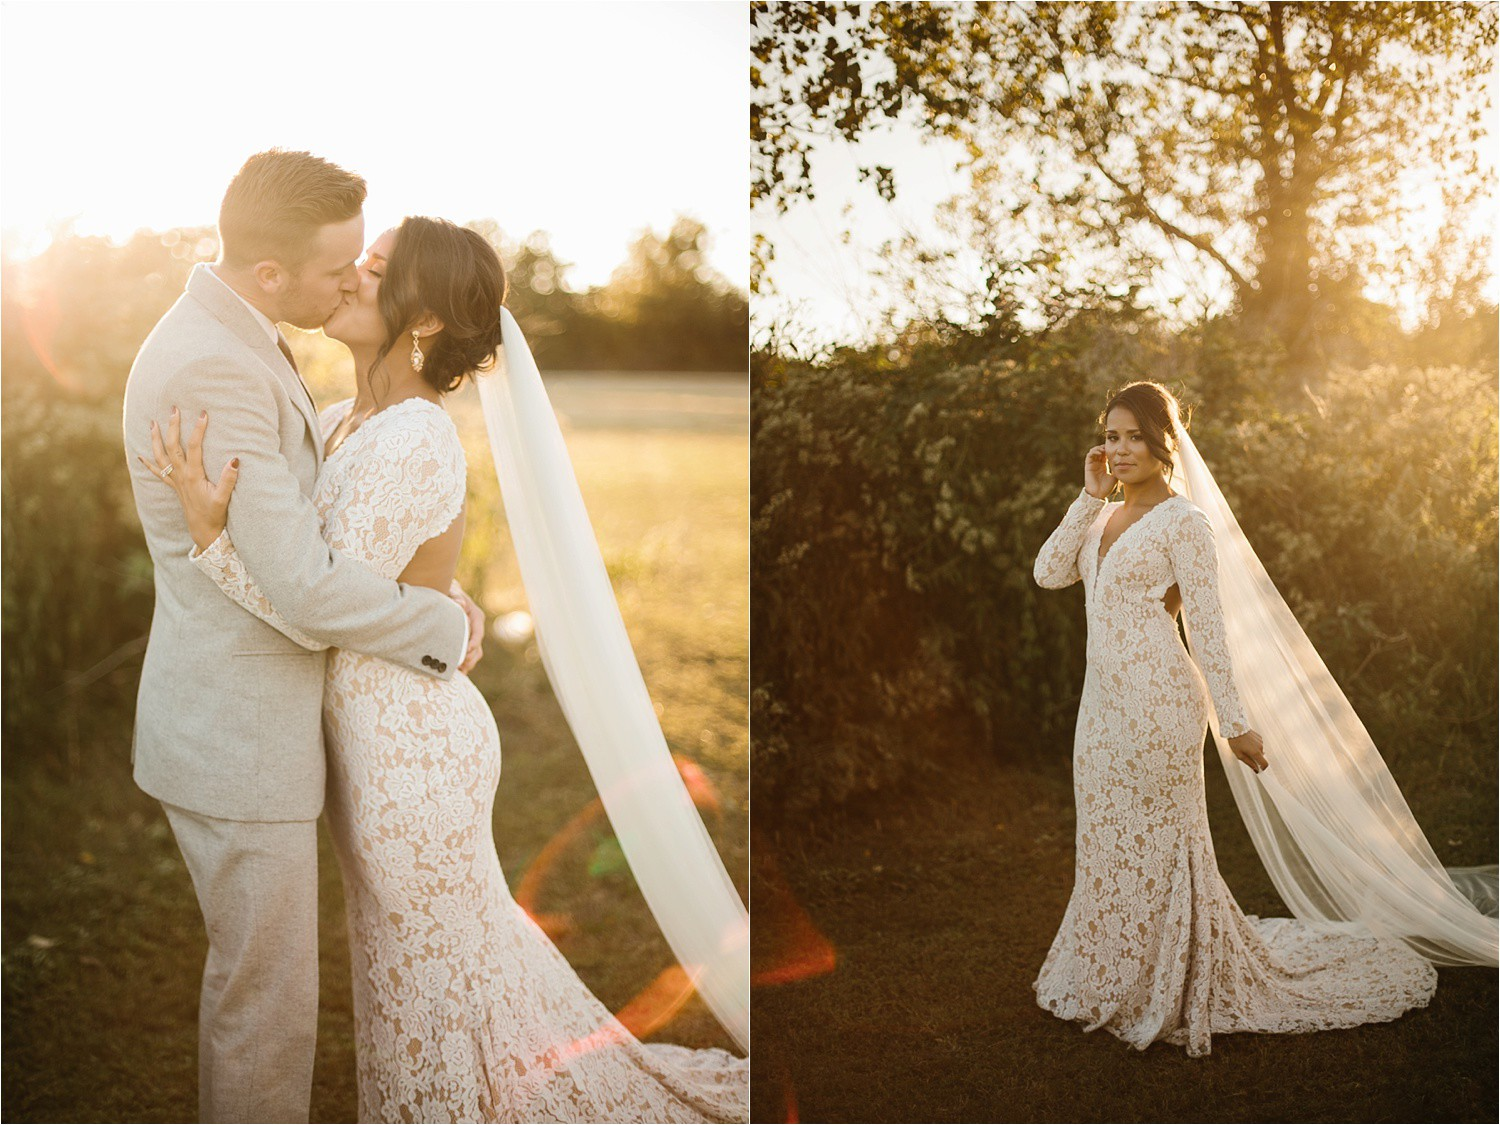 mallory-tyler-__-an-intimate-after-session-at-grapevine-lake-by-north-texas-wedding-photographer-rachel-meagan-photography-_-22